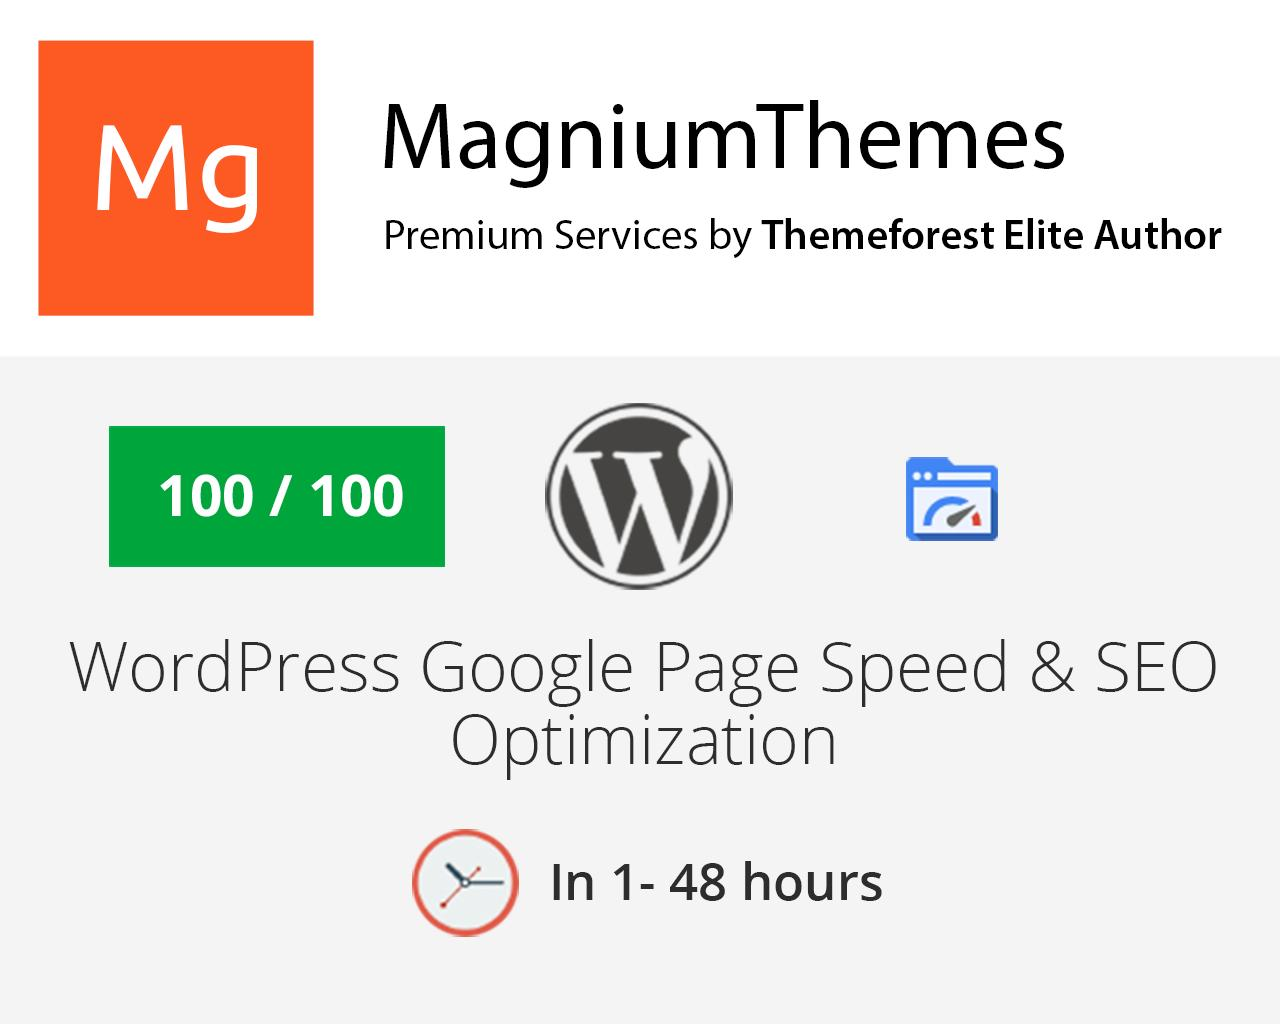 Premium WordPress Website Speed and SEO Optimization - All in One by dedalx - 105771